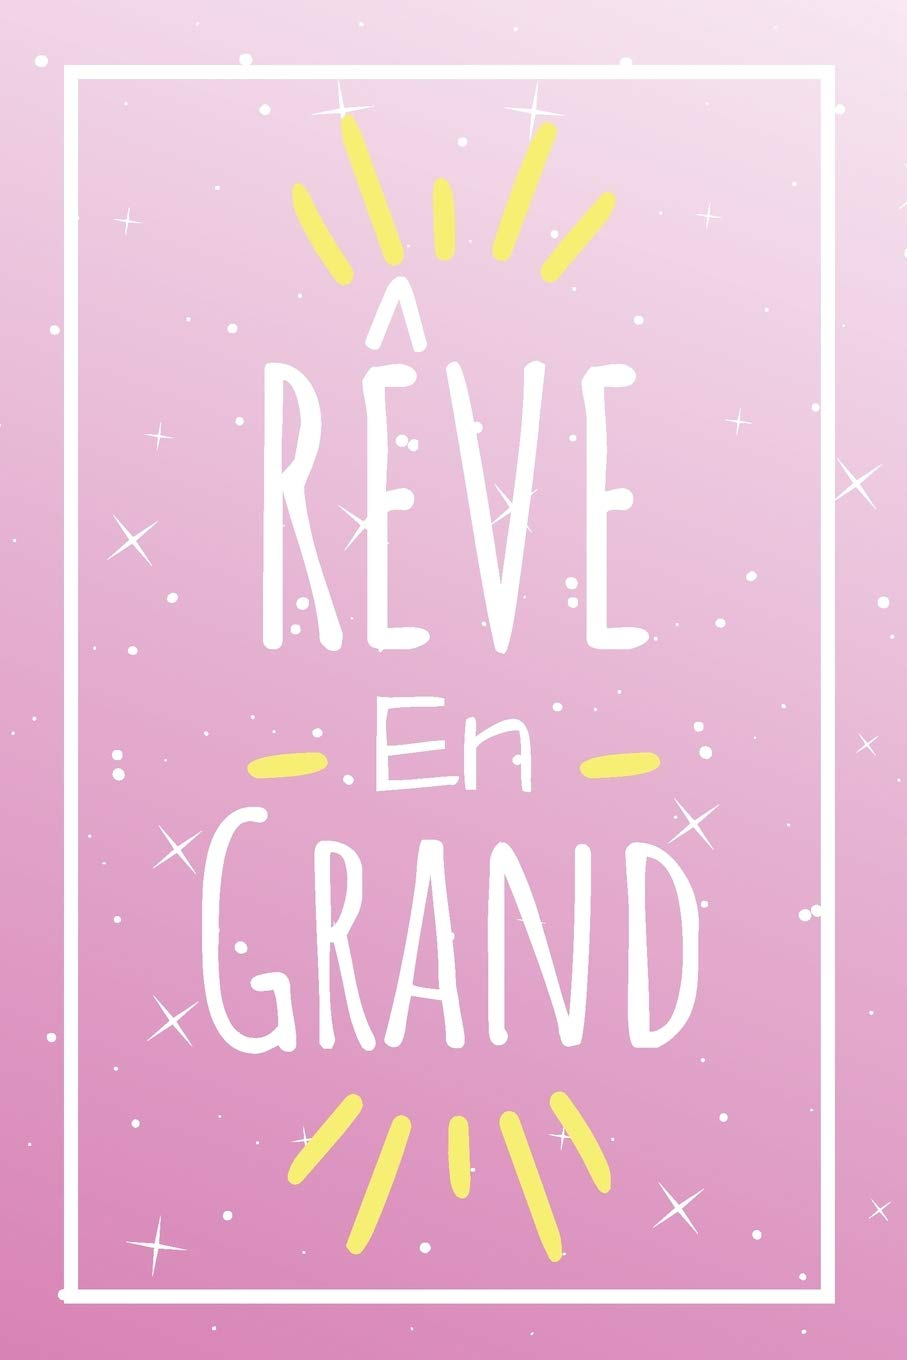 Reve En Grand Journal Intime Idee Cadeau Original Pour Fille Message Positif Pour Anniversaire Noel La Rentree Des Classes French Edition Publishing Julien Anne 9781089180081 Amazon Com Books